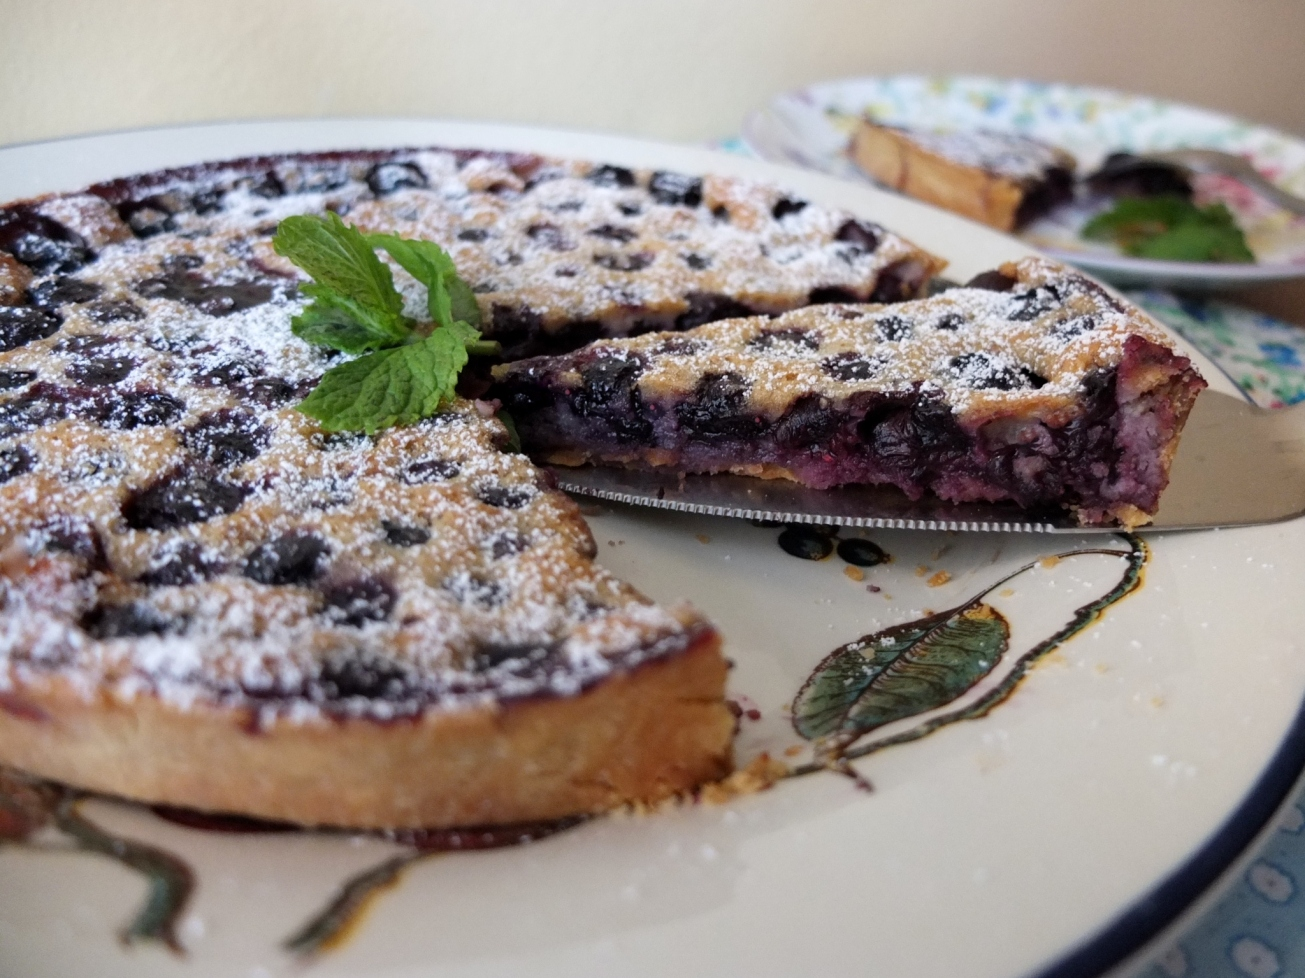 Healthier blueberry and pine nut tart